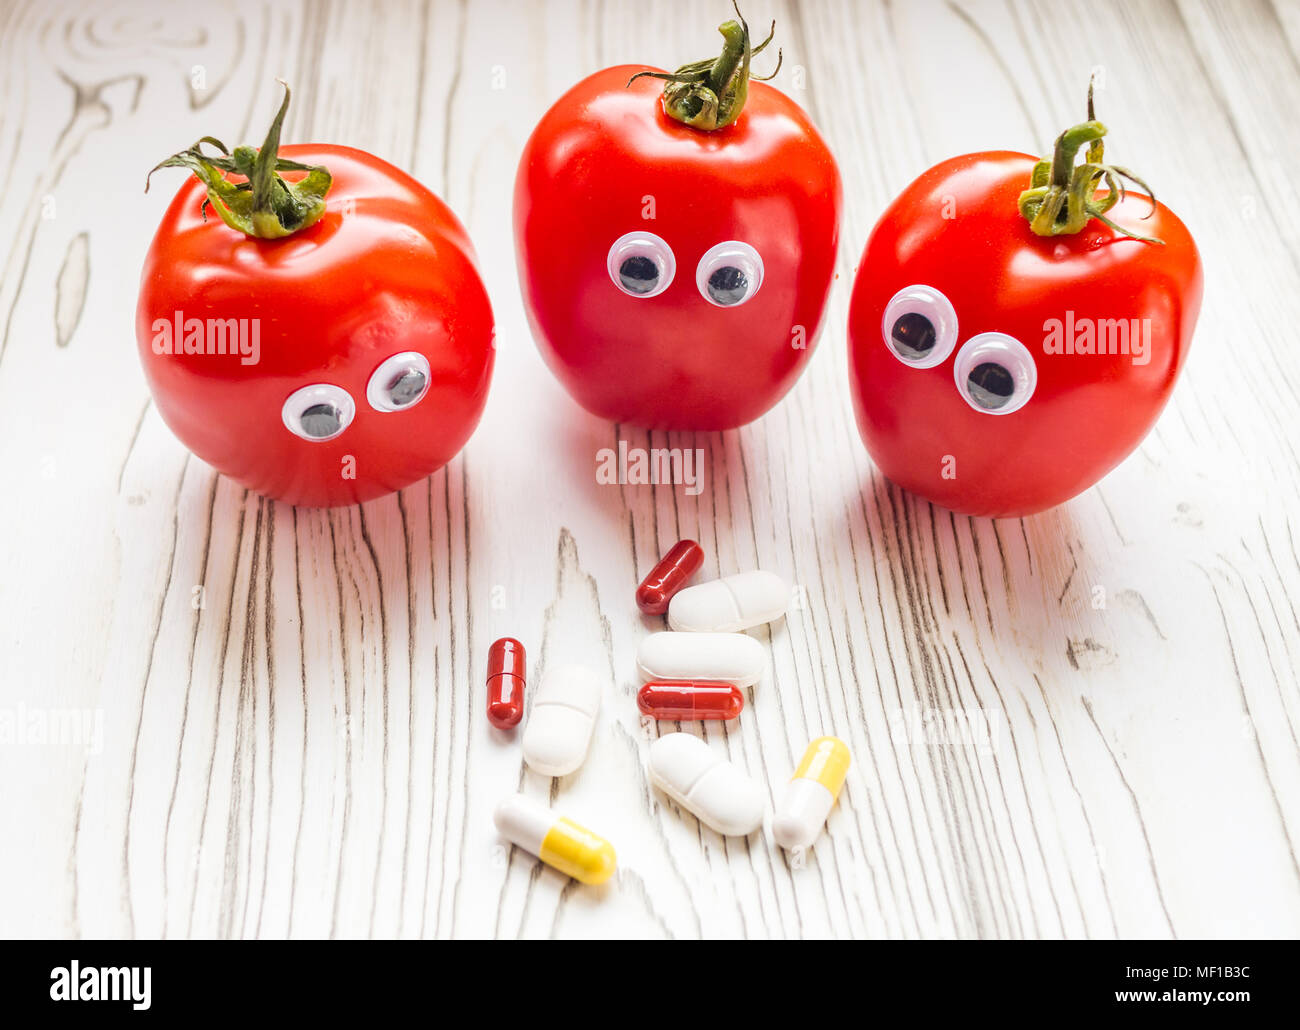 Tomatoes with wobbly eyes looking at vitamin supplements - Stock Image